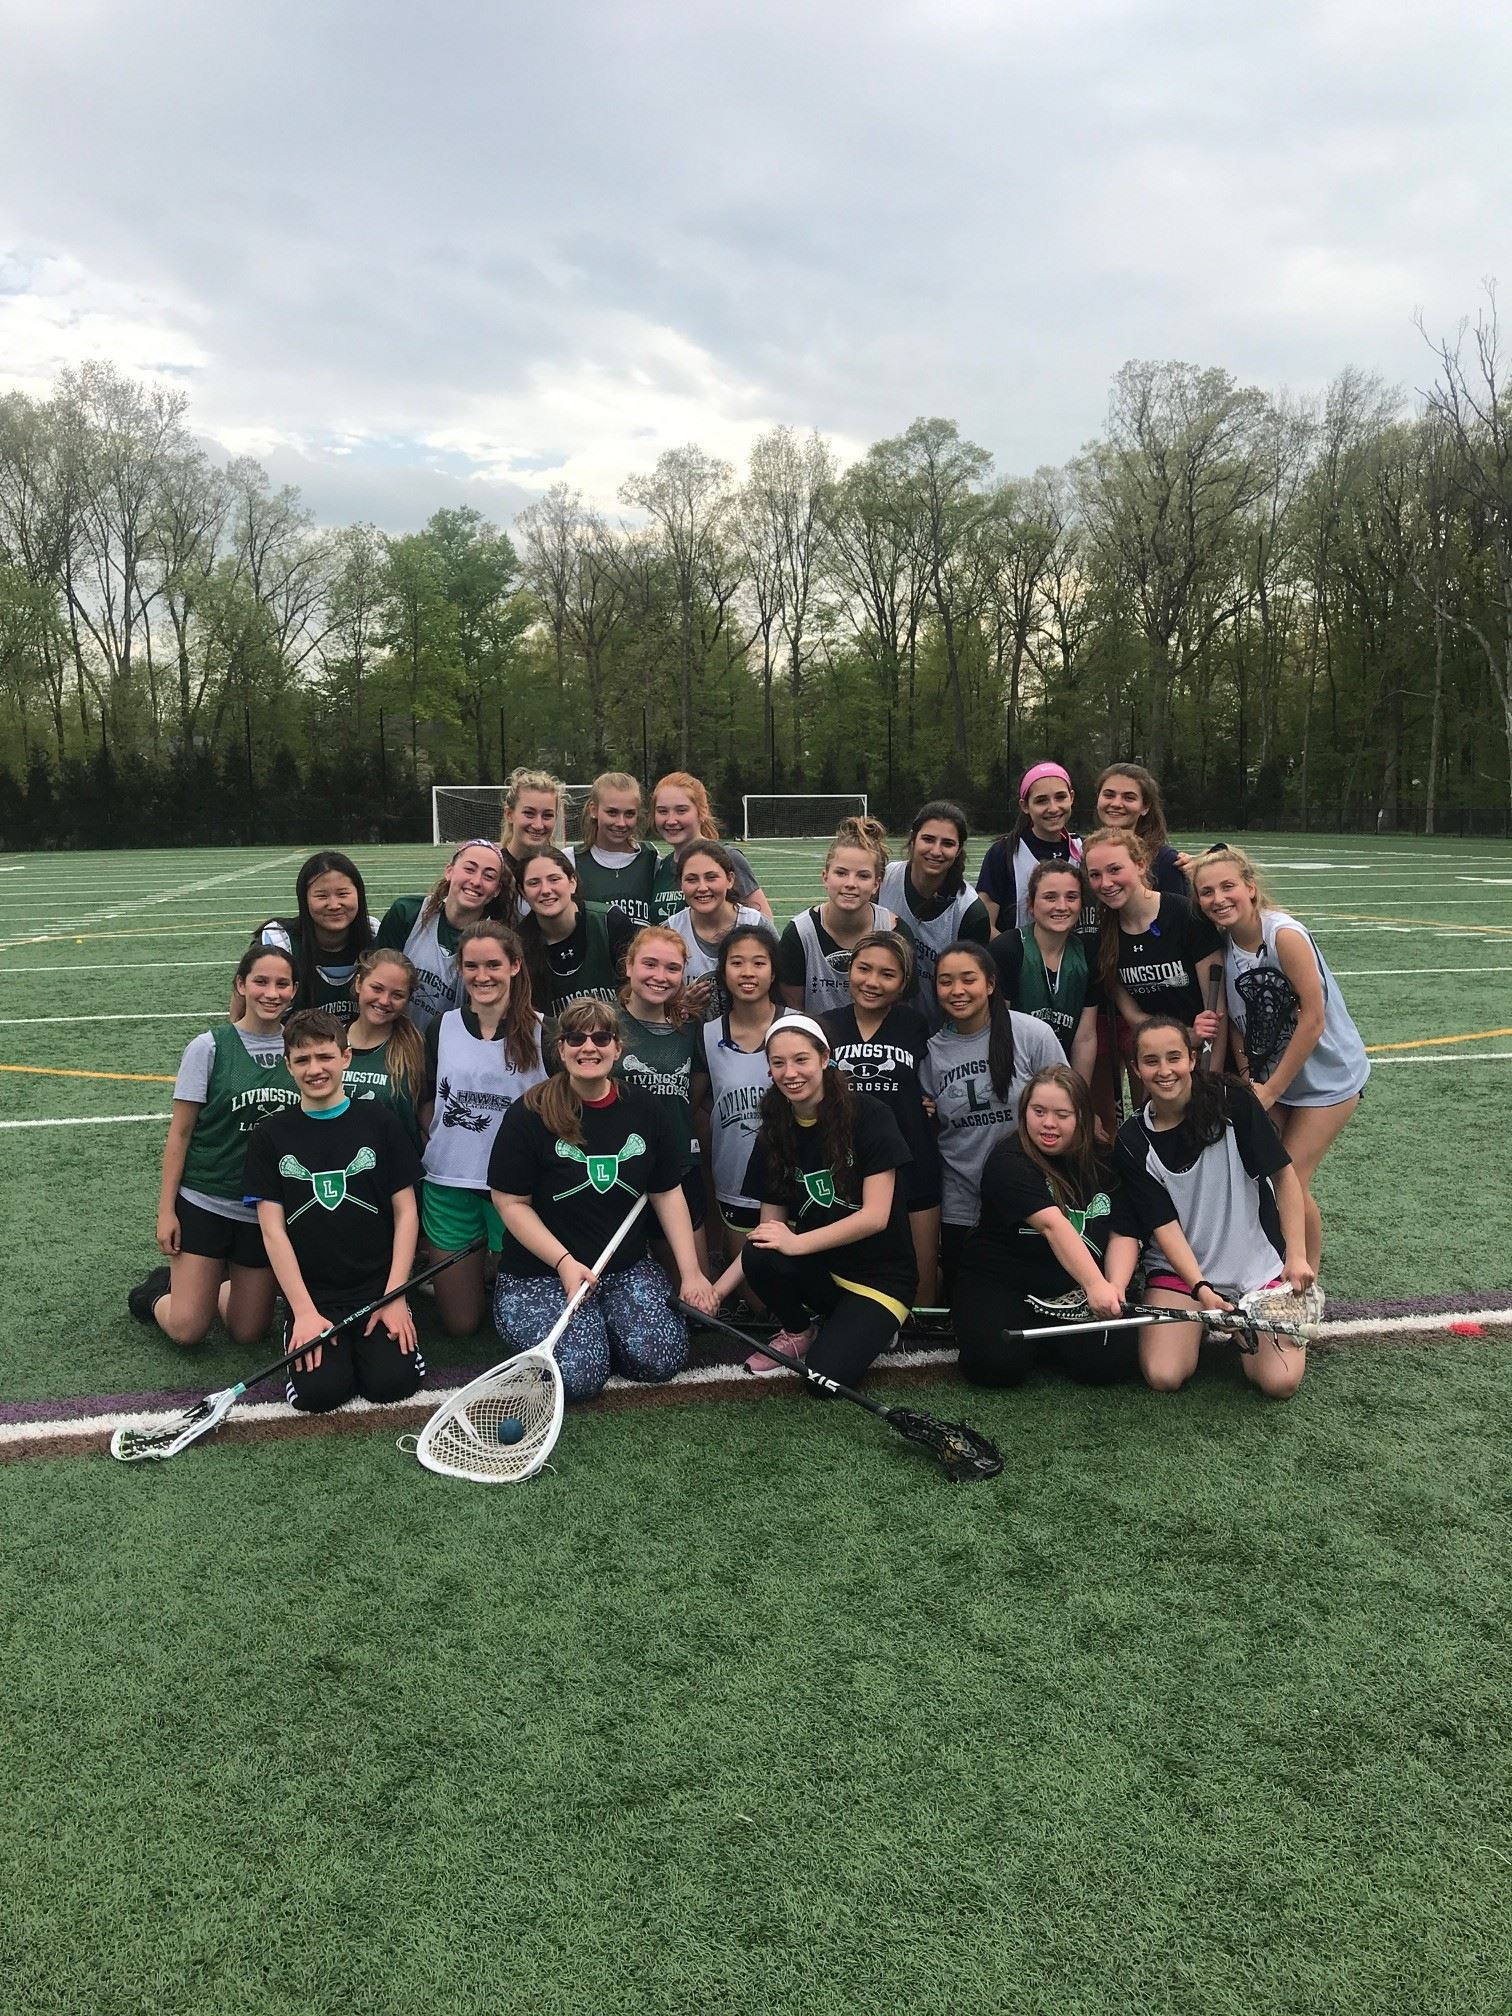 LHS Girls Lacrosse Team with Shining Stars Participants